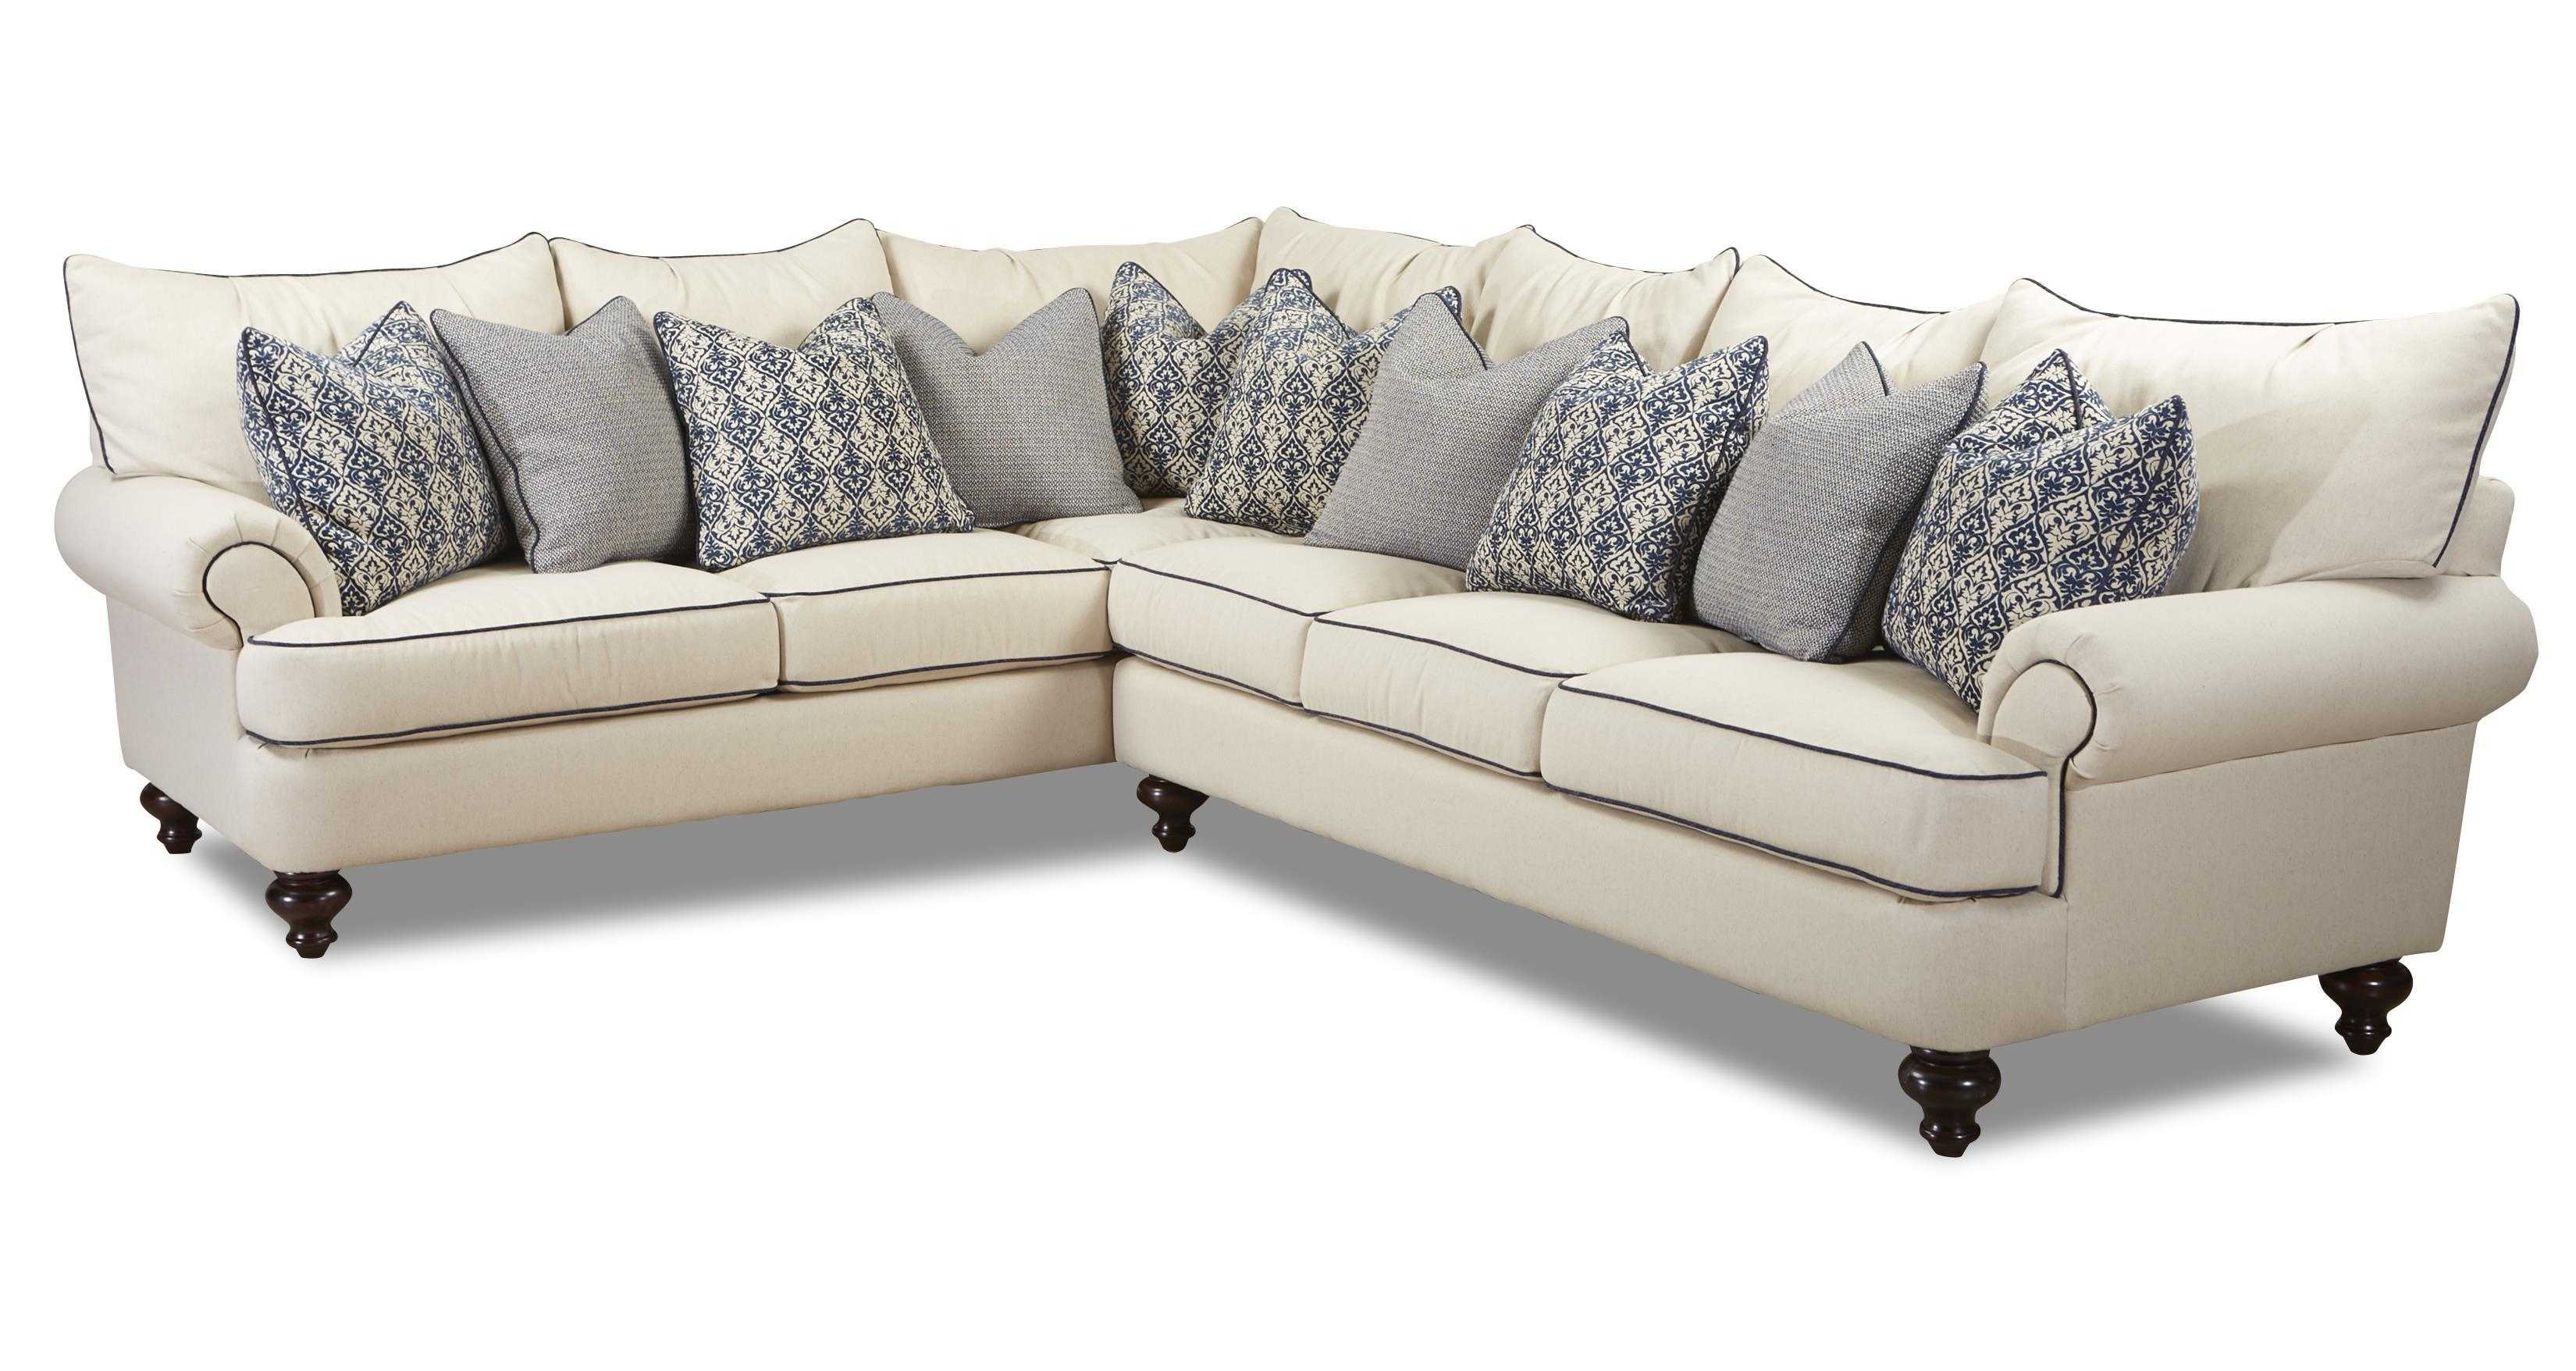 Klaussner Ashworth Shabby Chic Sectional Sofa – Wayside Furniture For Shabby Chic Sectional Sofas Couches (Image 8 of 21)